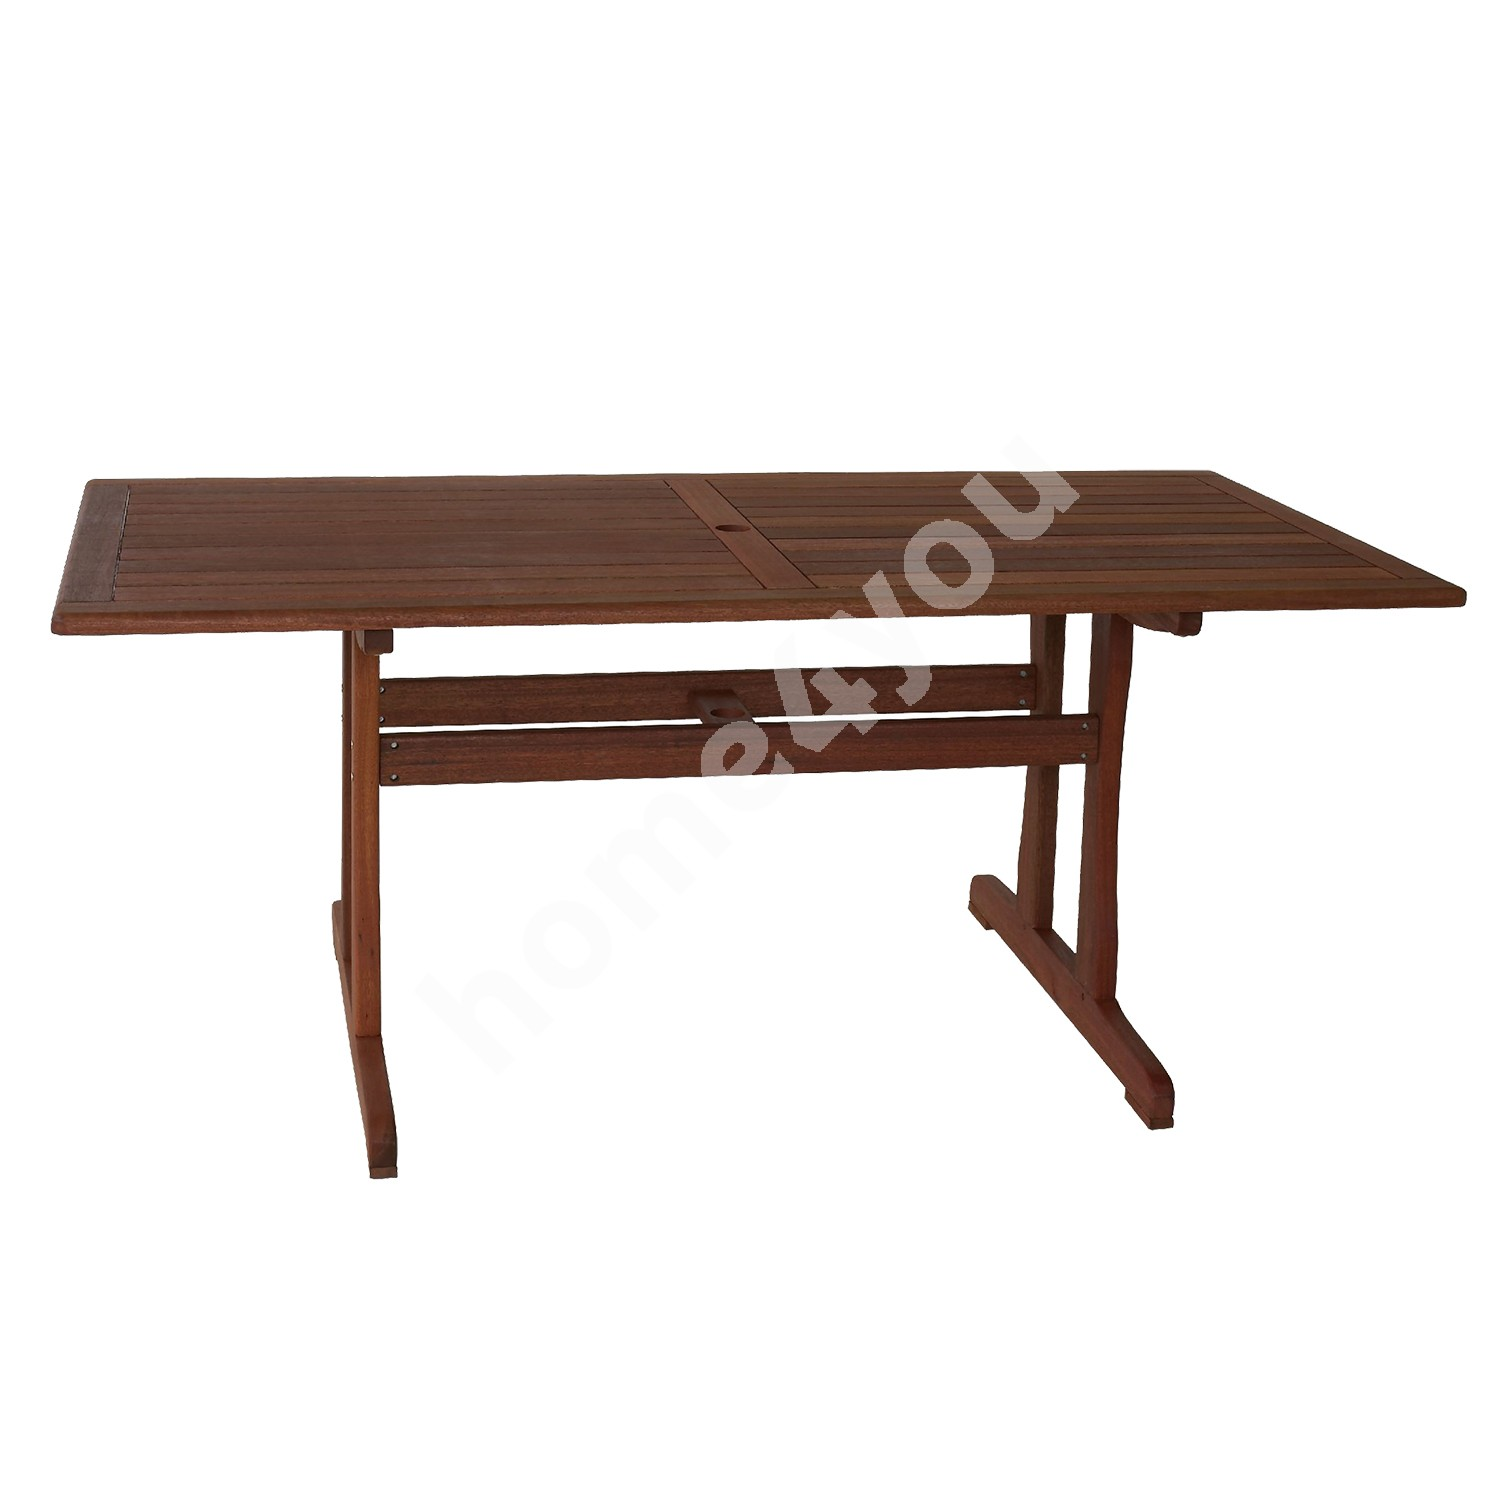 Table VENICE, 180x90xH74cm, wood:  meranti, finish: oiled